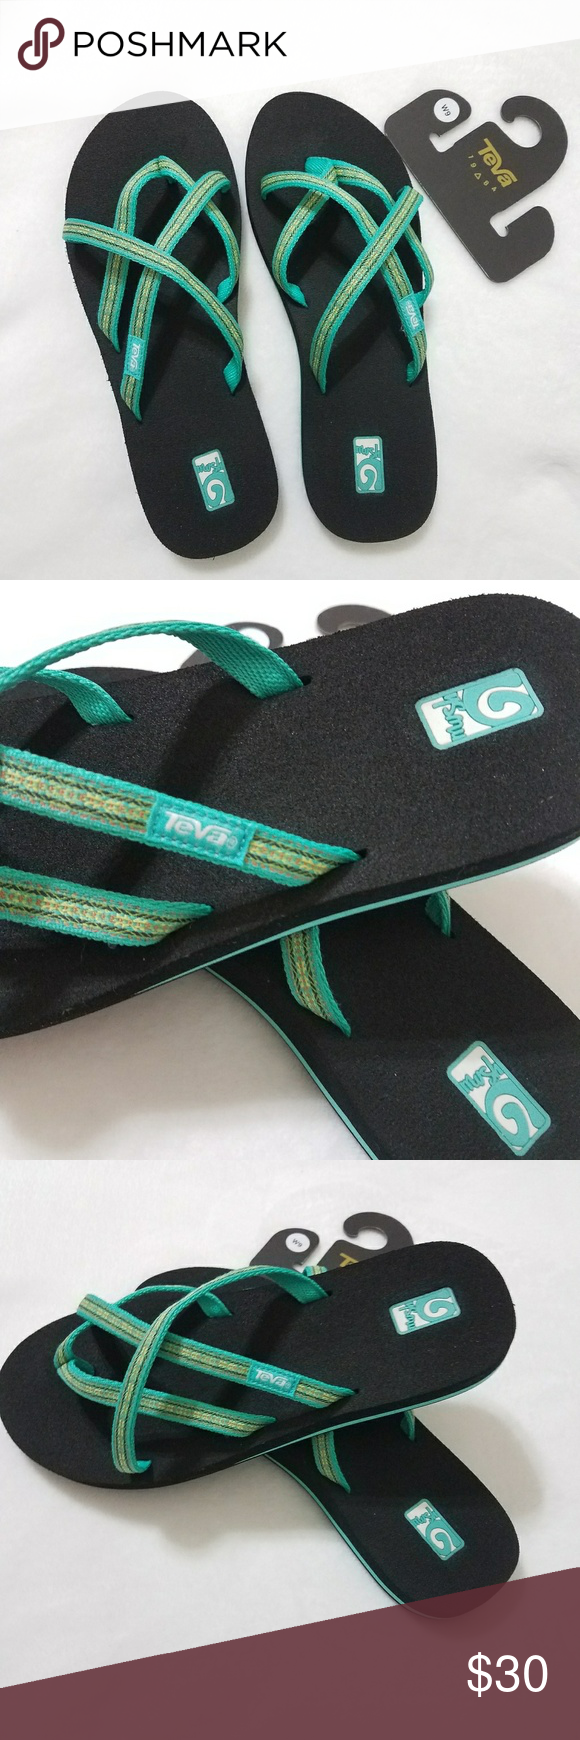 980ef4b65 Teva Olowahu Mush Flip Flops Synthetic sole W on the product packaging  refers to Womens Cushy